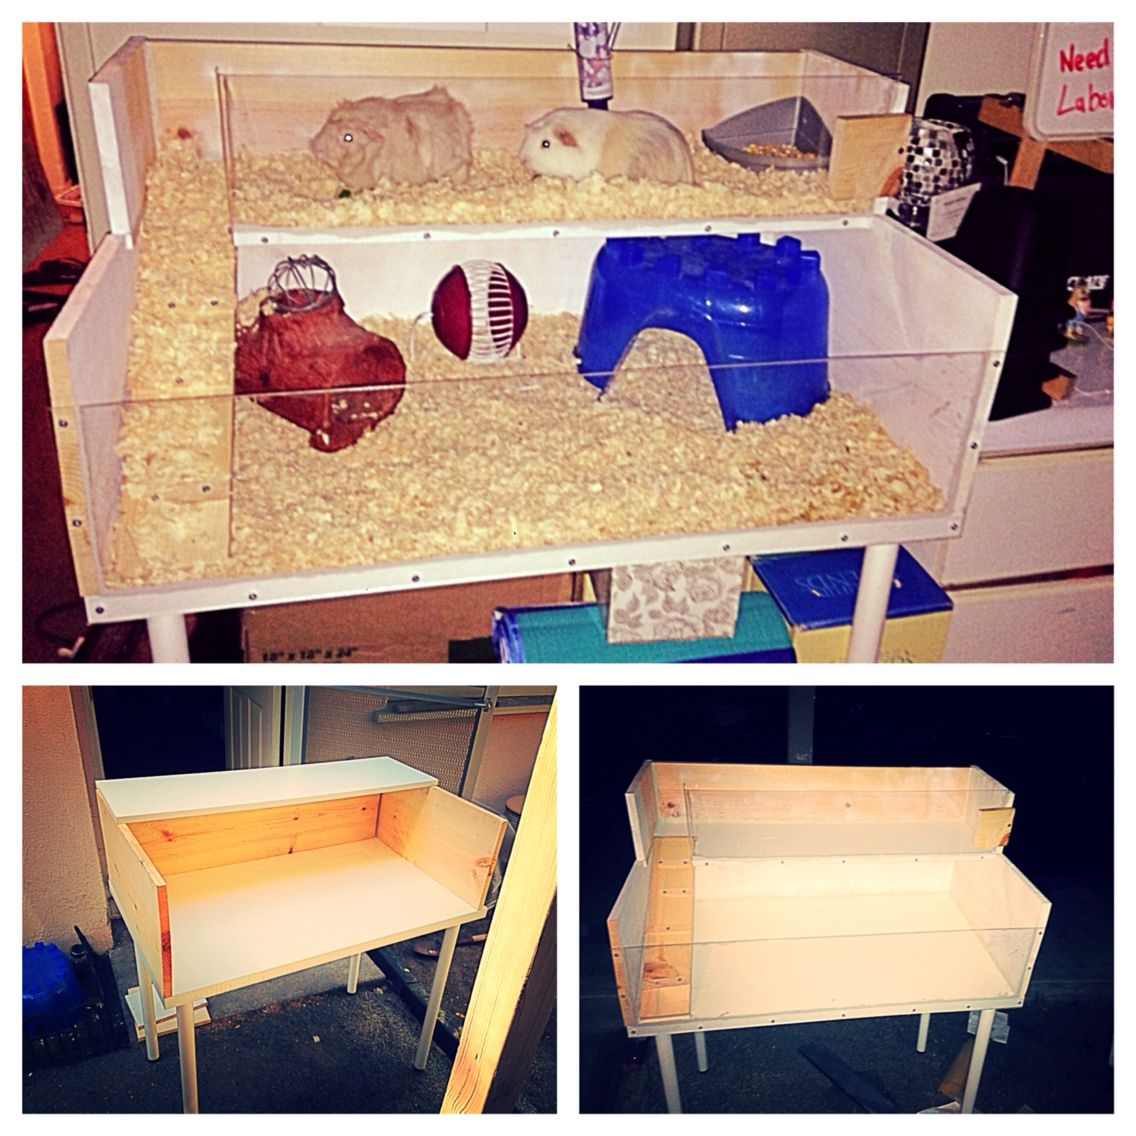 Diy guinea pig cage with an ikea desk ikea shelf and for Guinea pig accessories diy